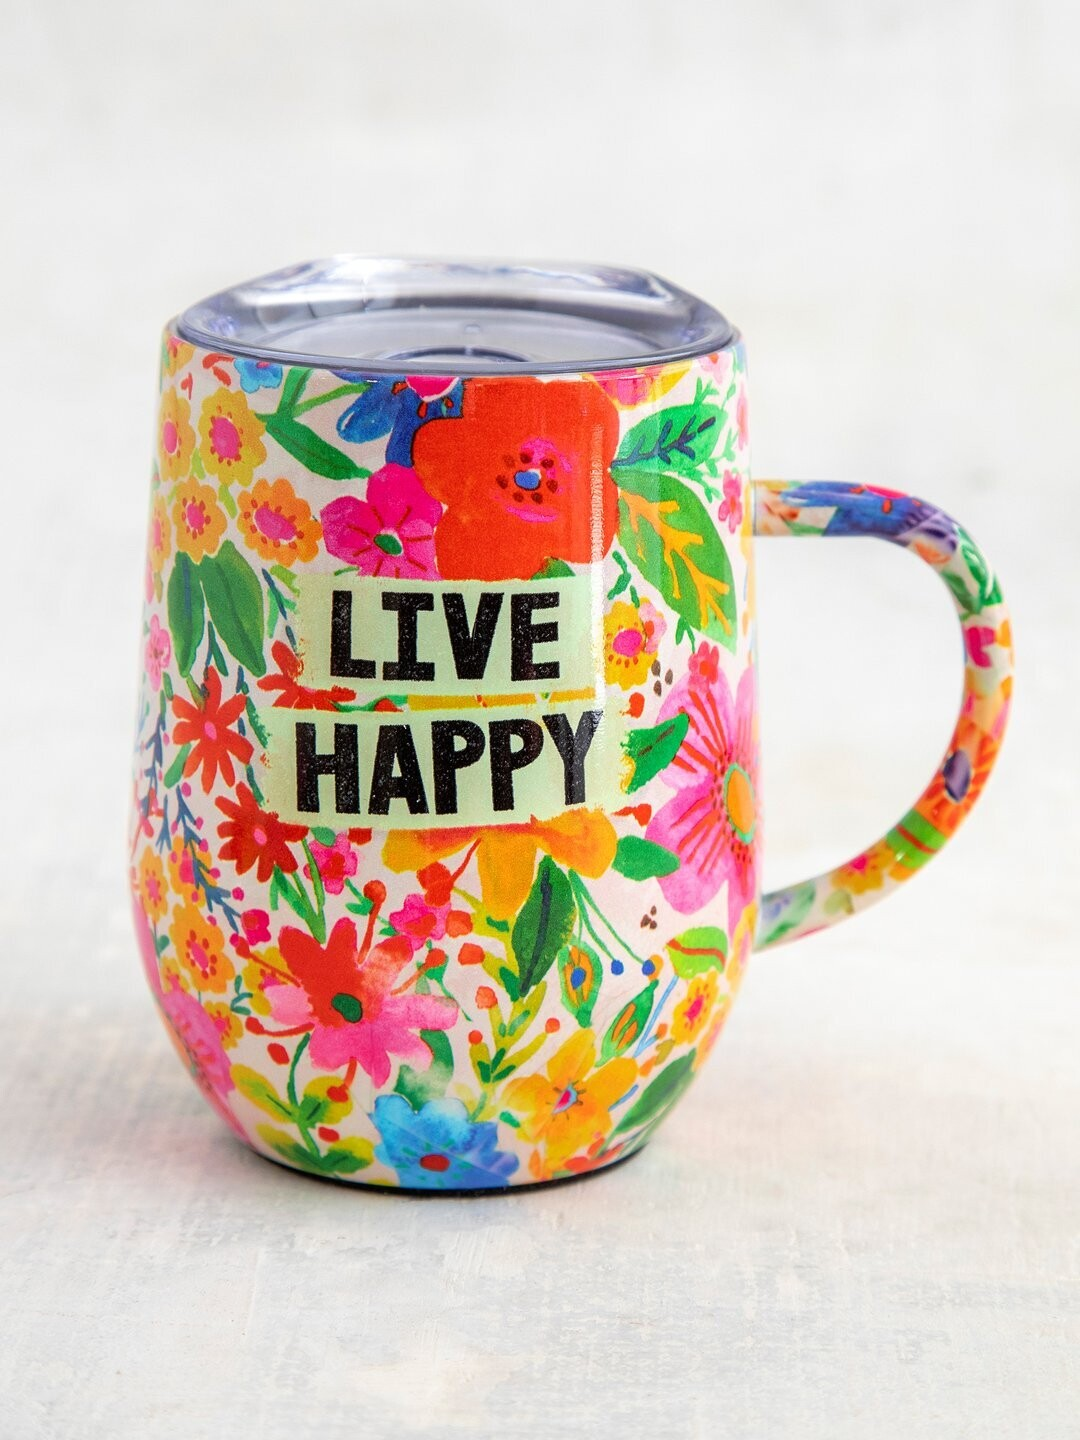 Live Happy Stainless Steel Coffee Tumbler